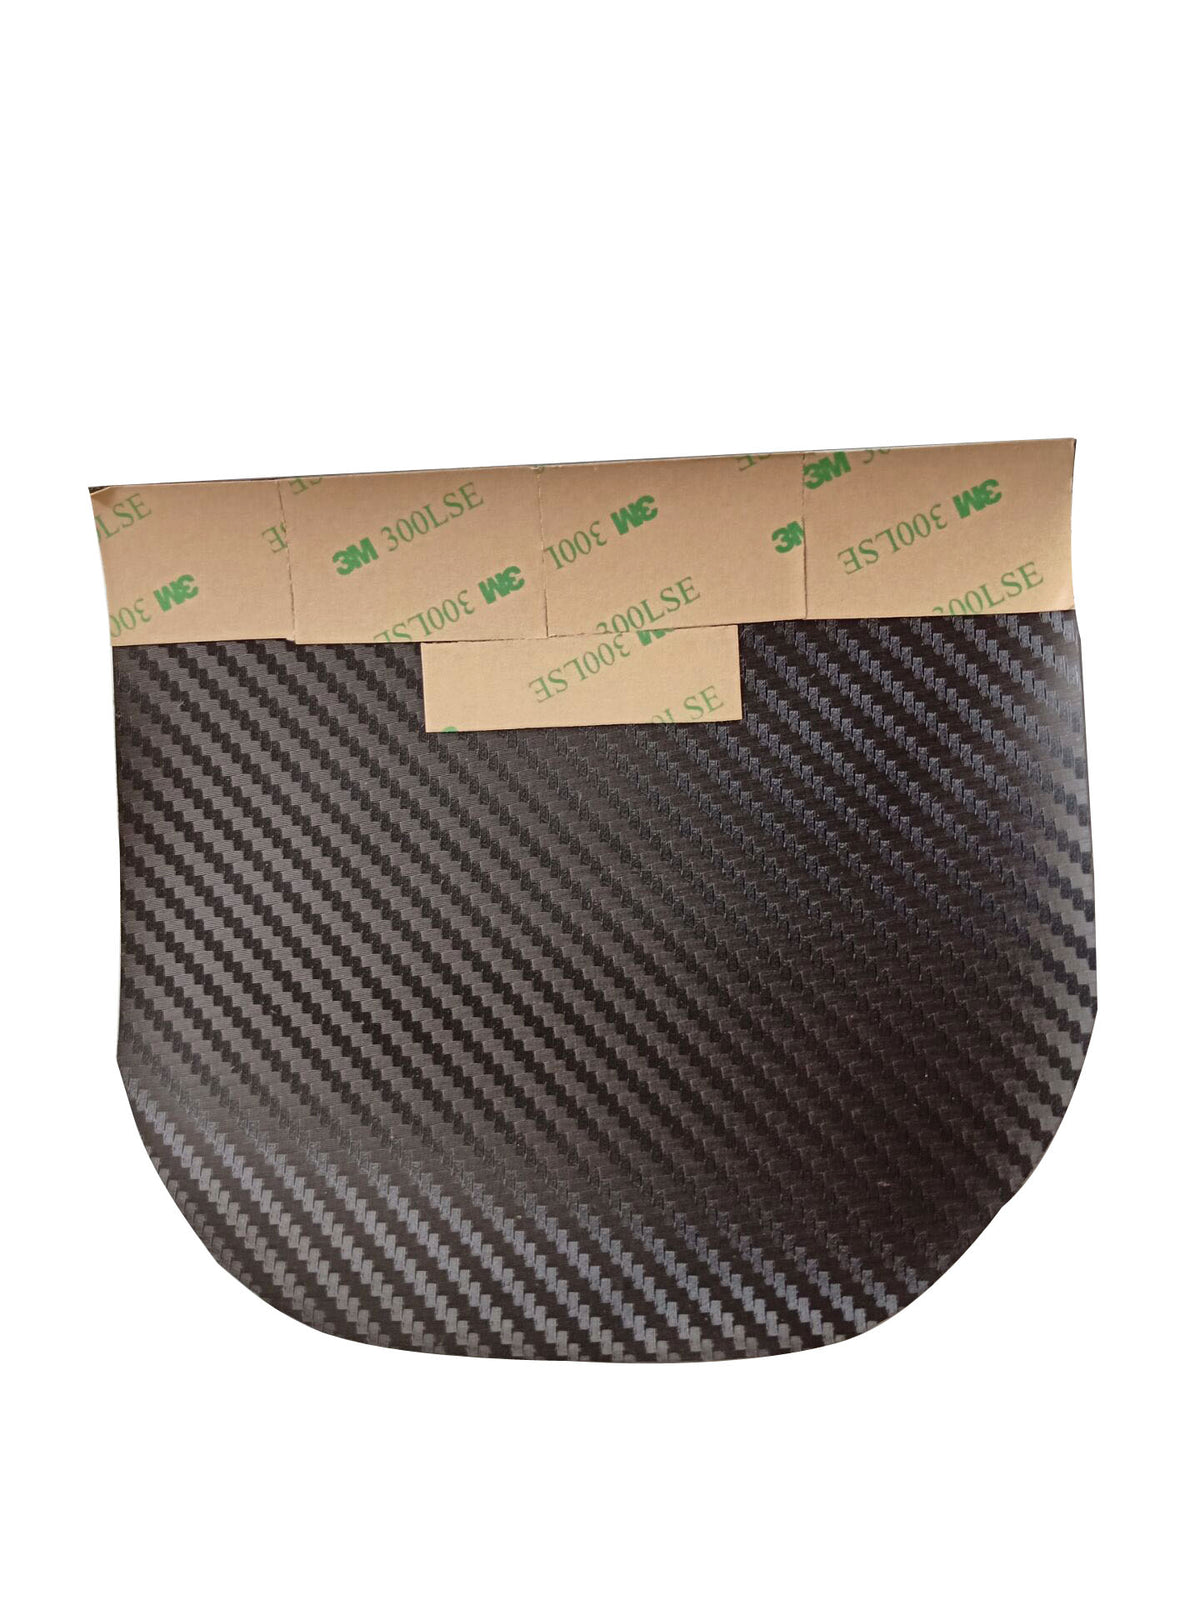 Carbon Fibre Mercane WideWheel Rear Mudguard Extender-Electric Scooters London